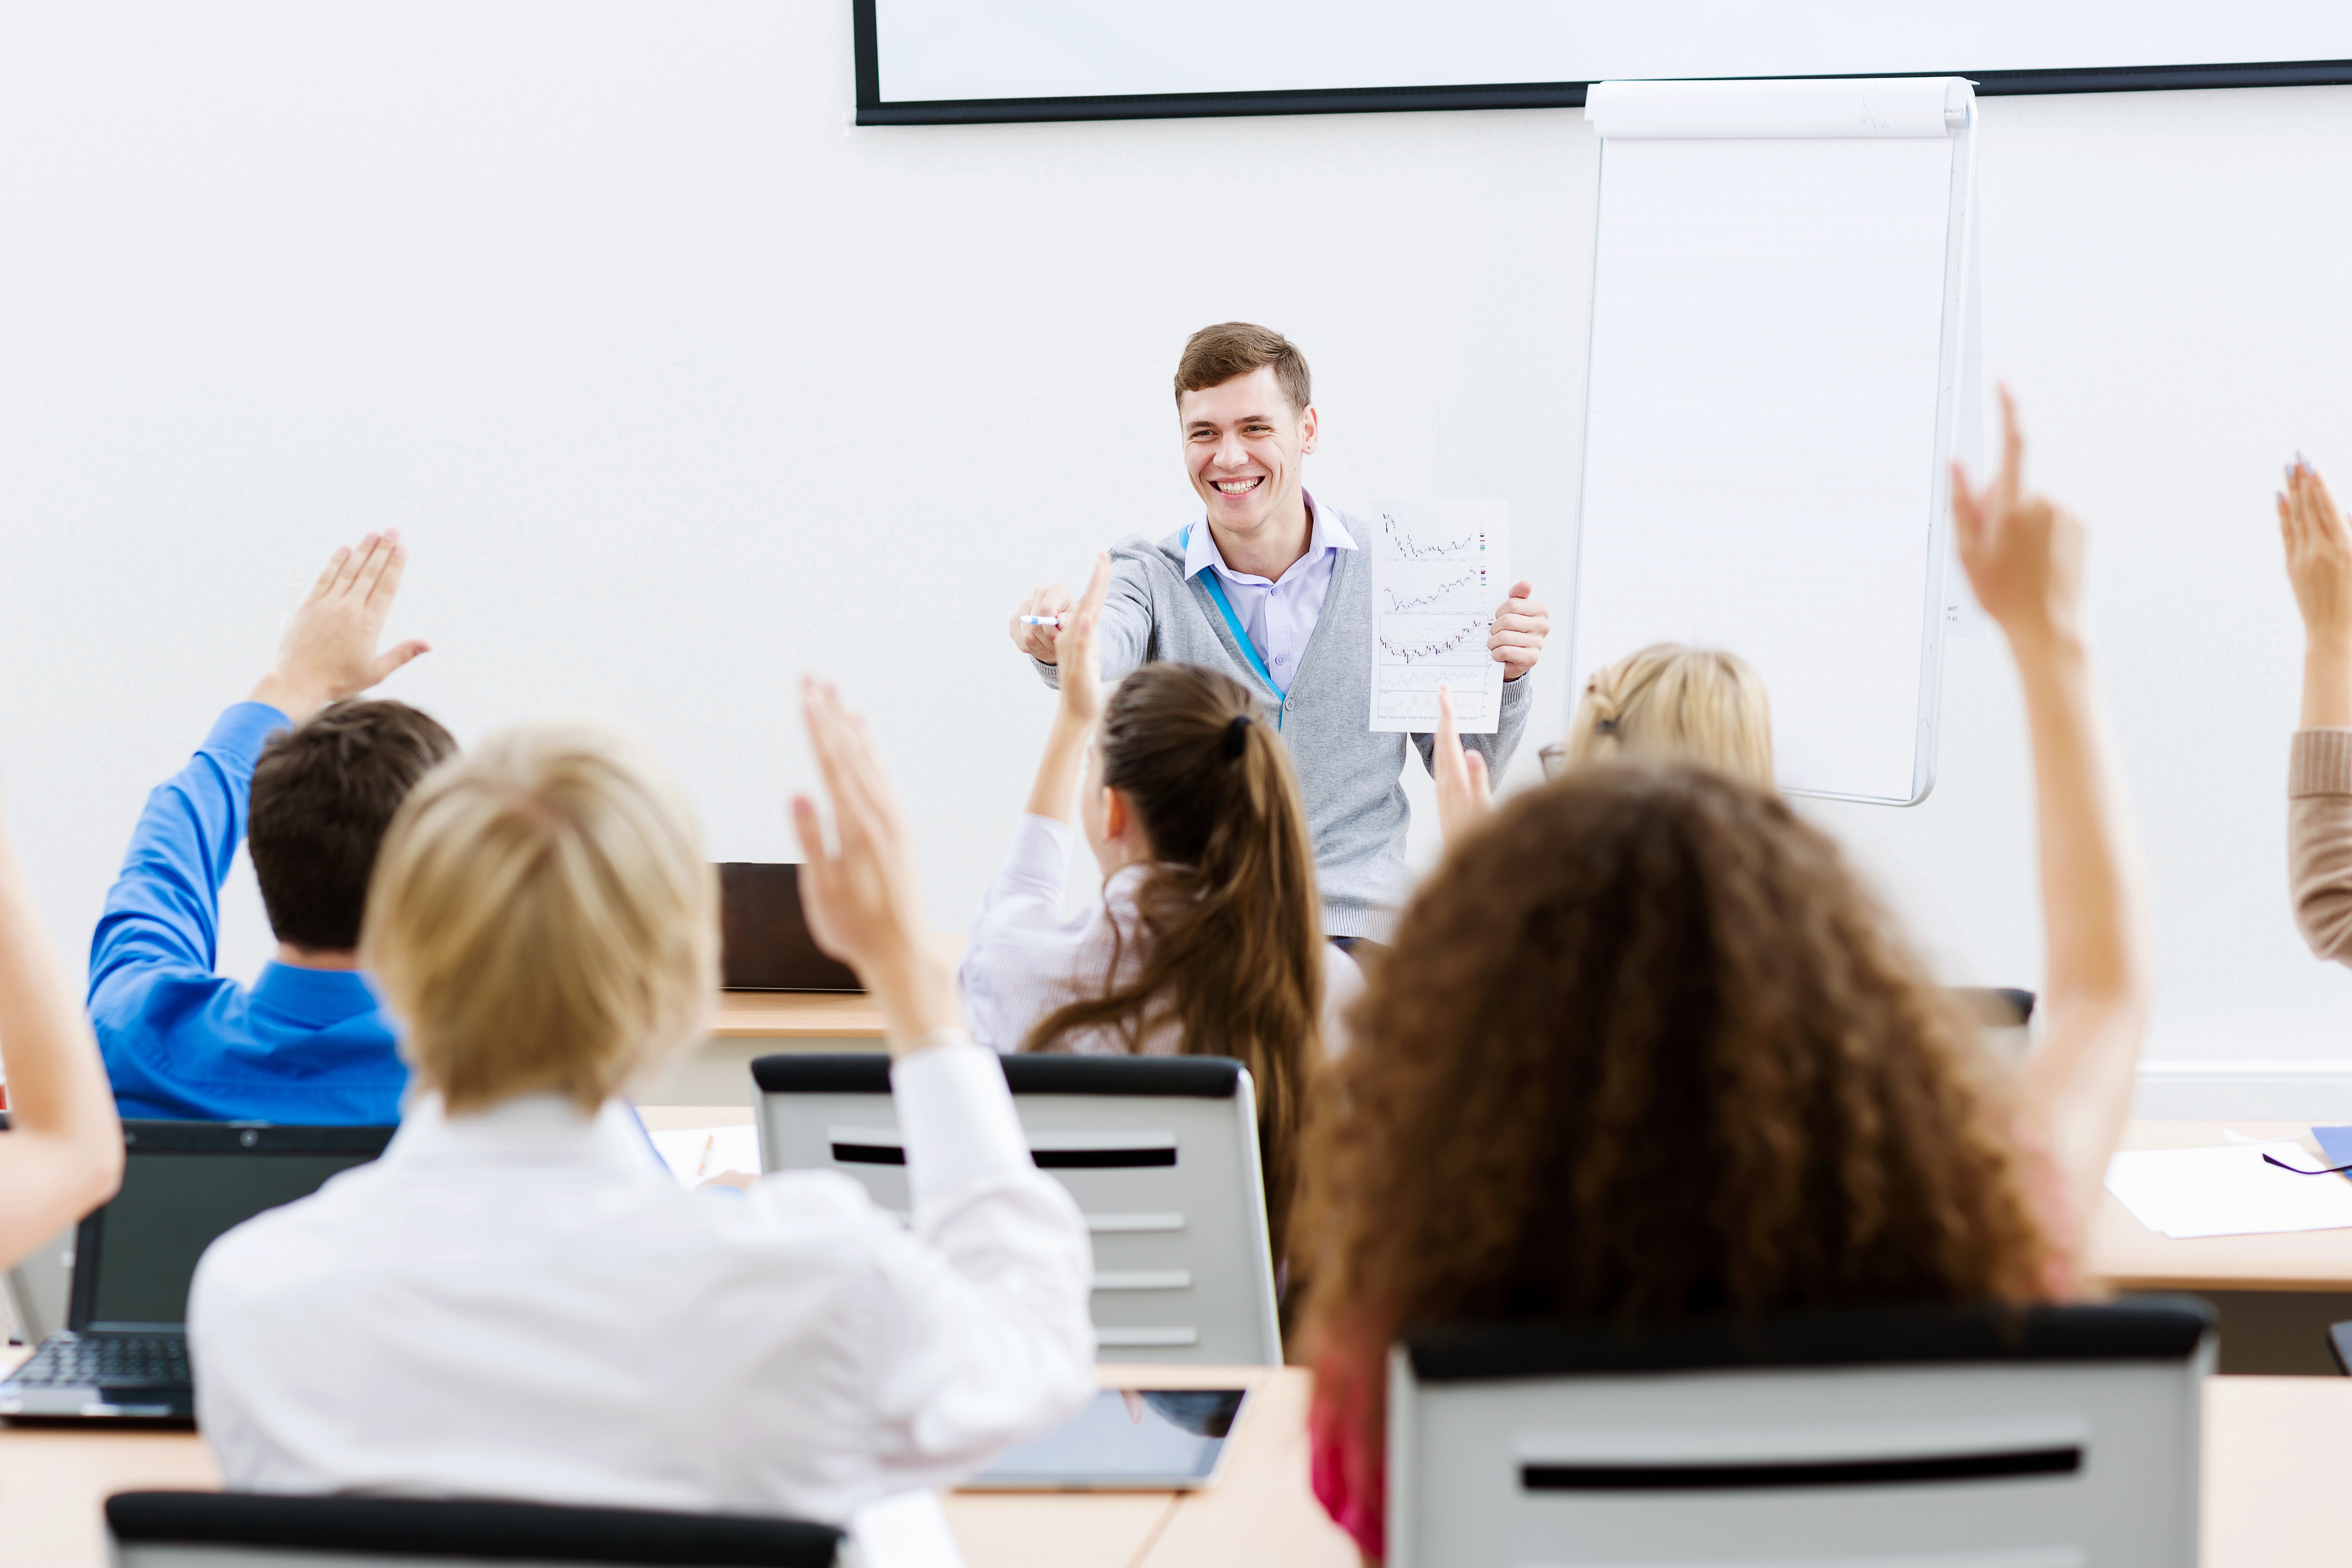 Class room with students